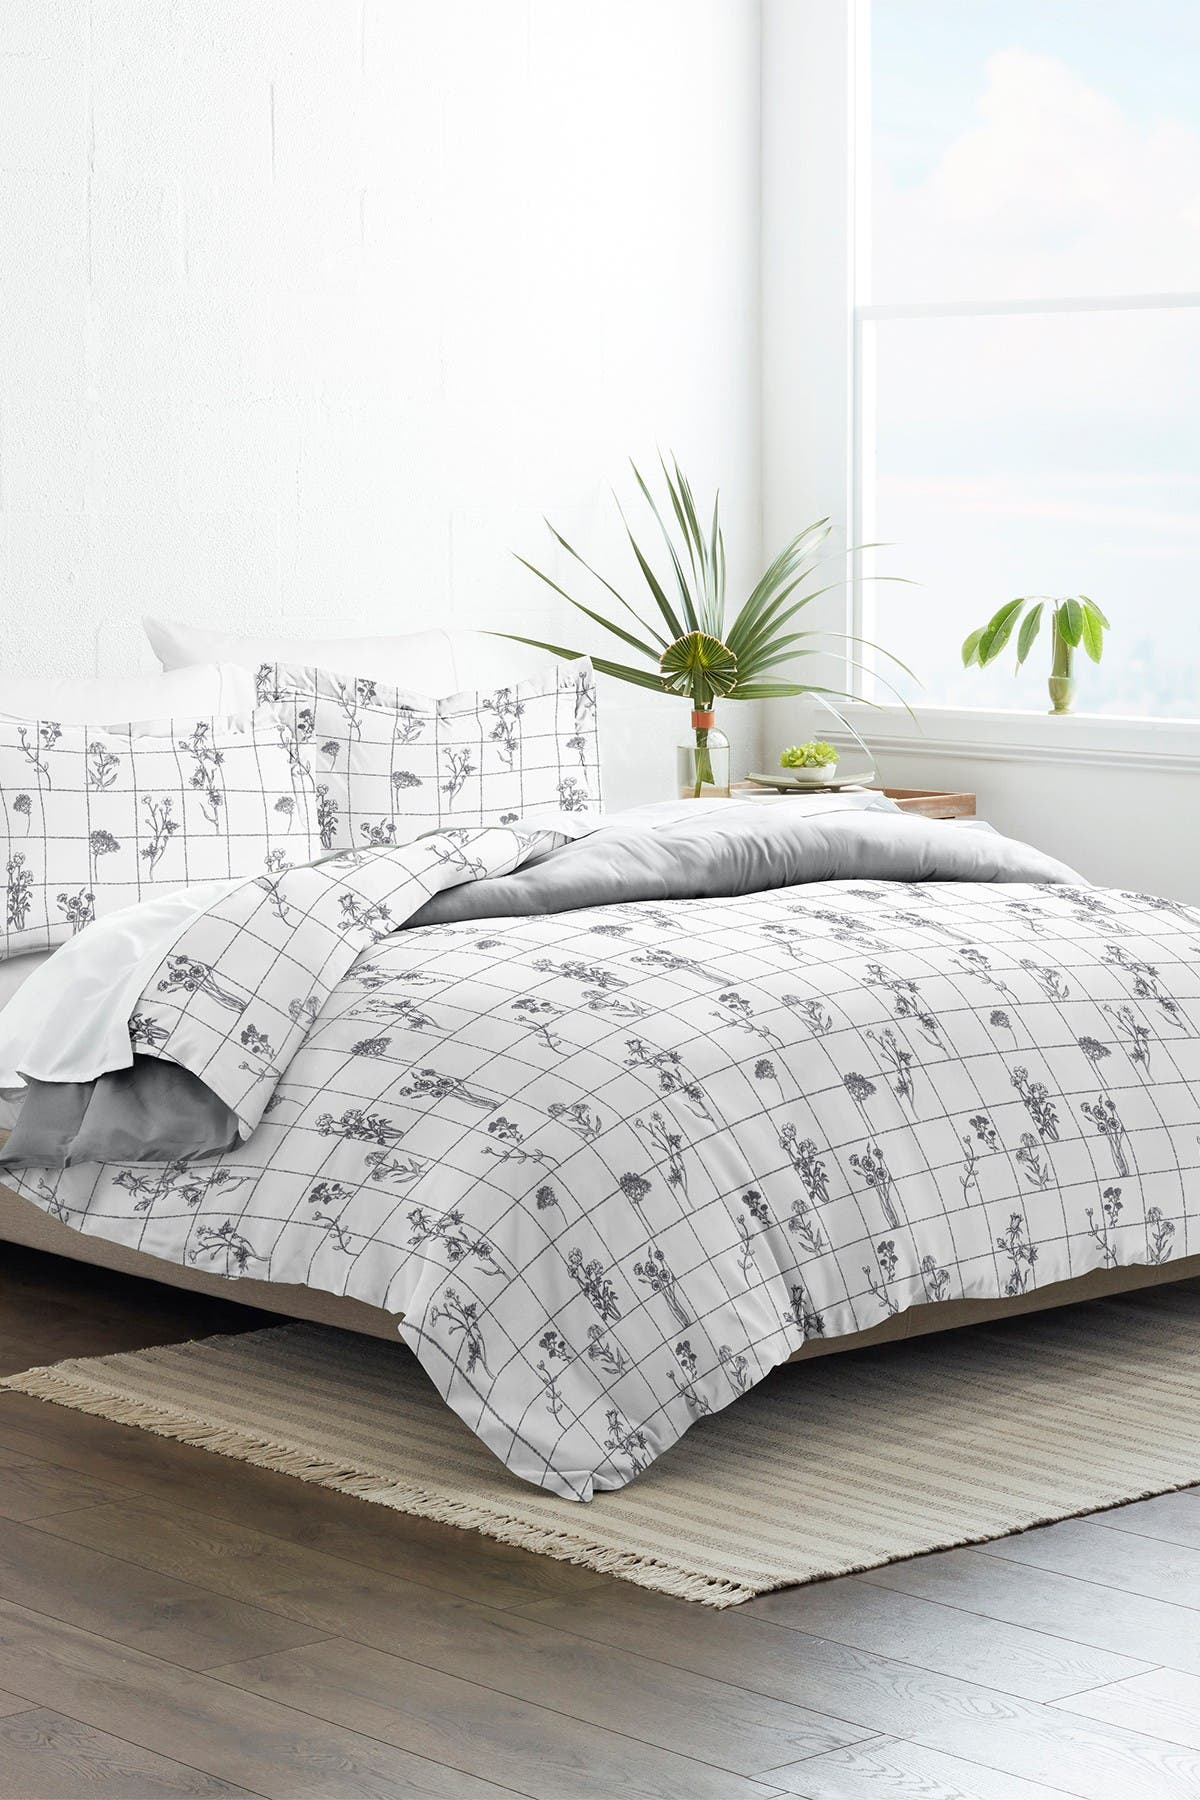 Image of IENJOY HOME Home Collection Premium Ultra Soft Flower Field Pattern 3-Piece Full/Queen Reversible Duvet Cover Set - Gray